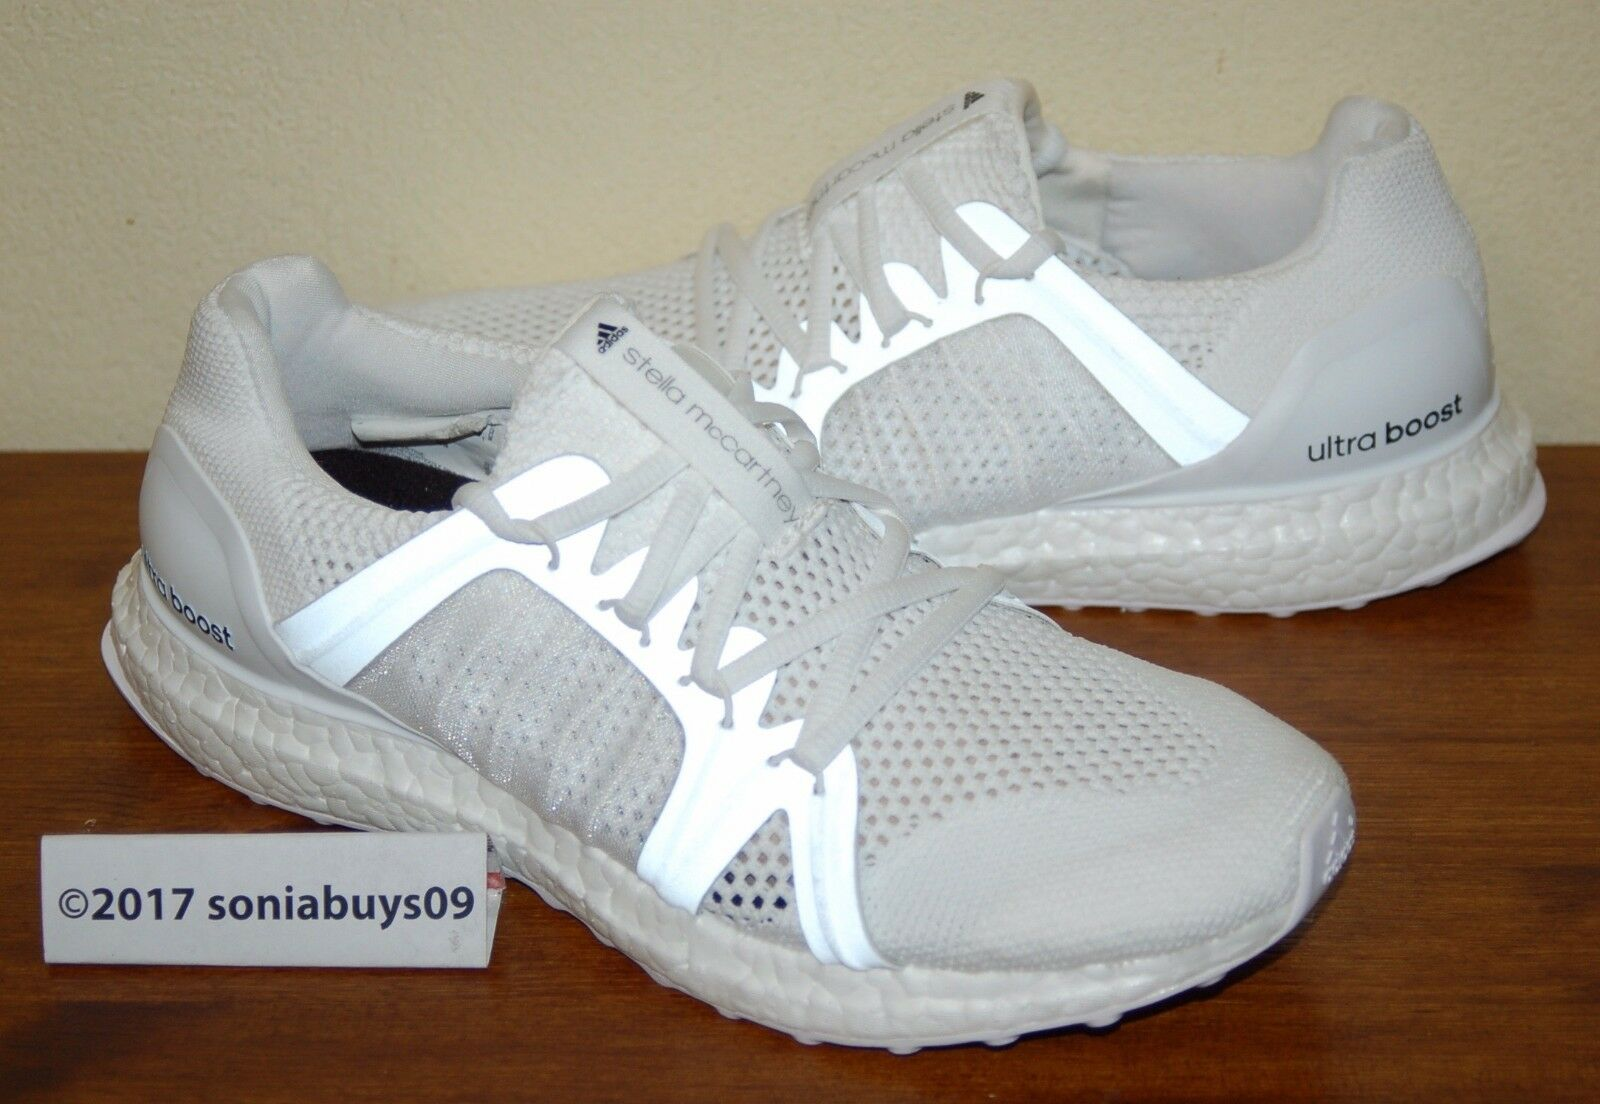 Adidas Women's Stella  M UltraBoost Running shoes, BB0820, White, US Size 9  fast shipping and best service